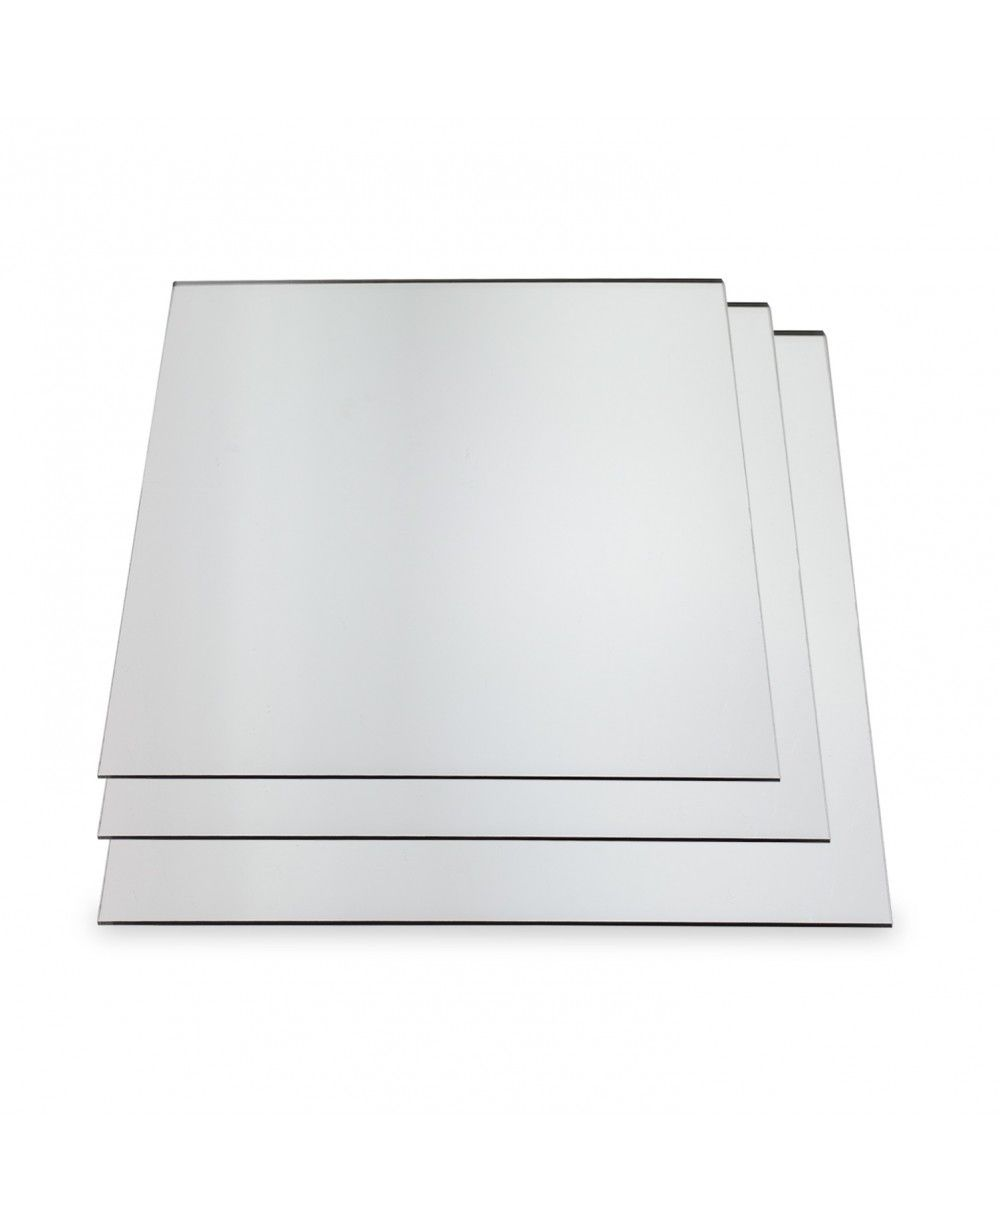 Mirror 3mm Acrylic Various Sizes